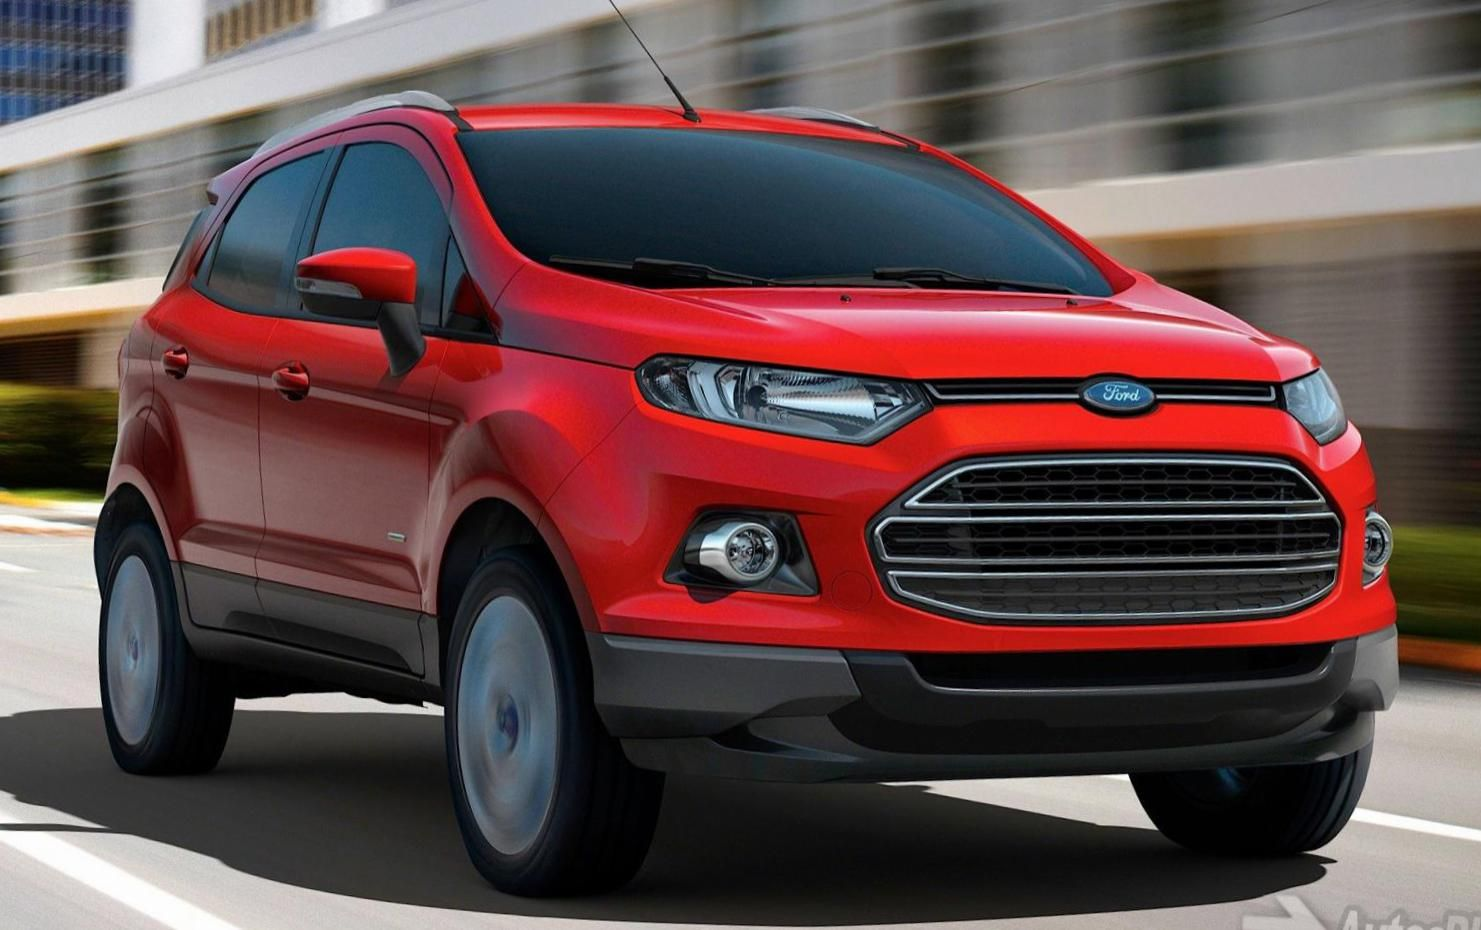 Ford Ecosport Photos And Specs Photo Ford Ecosport Specifications And 26 Perfect Photos Of Ford Ecosport Ford Ecosport New Cars Car